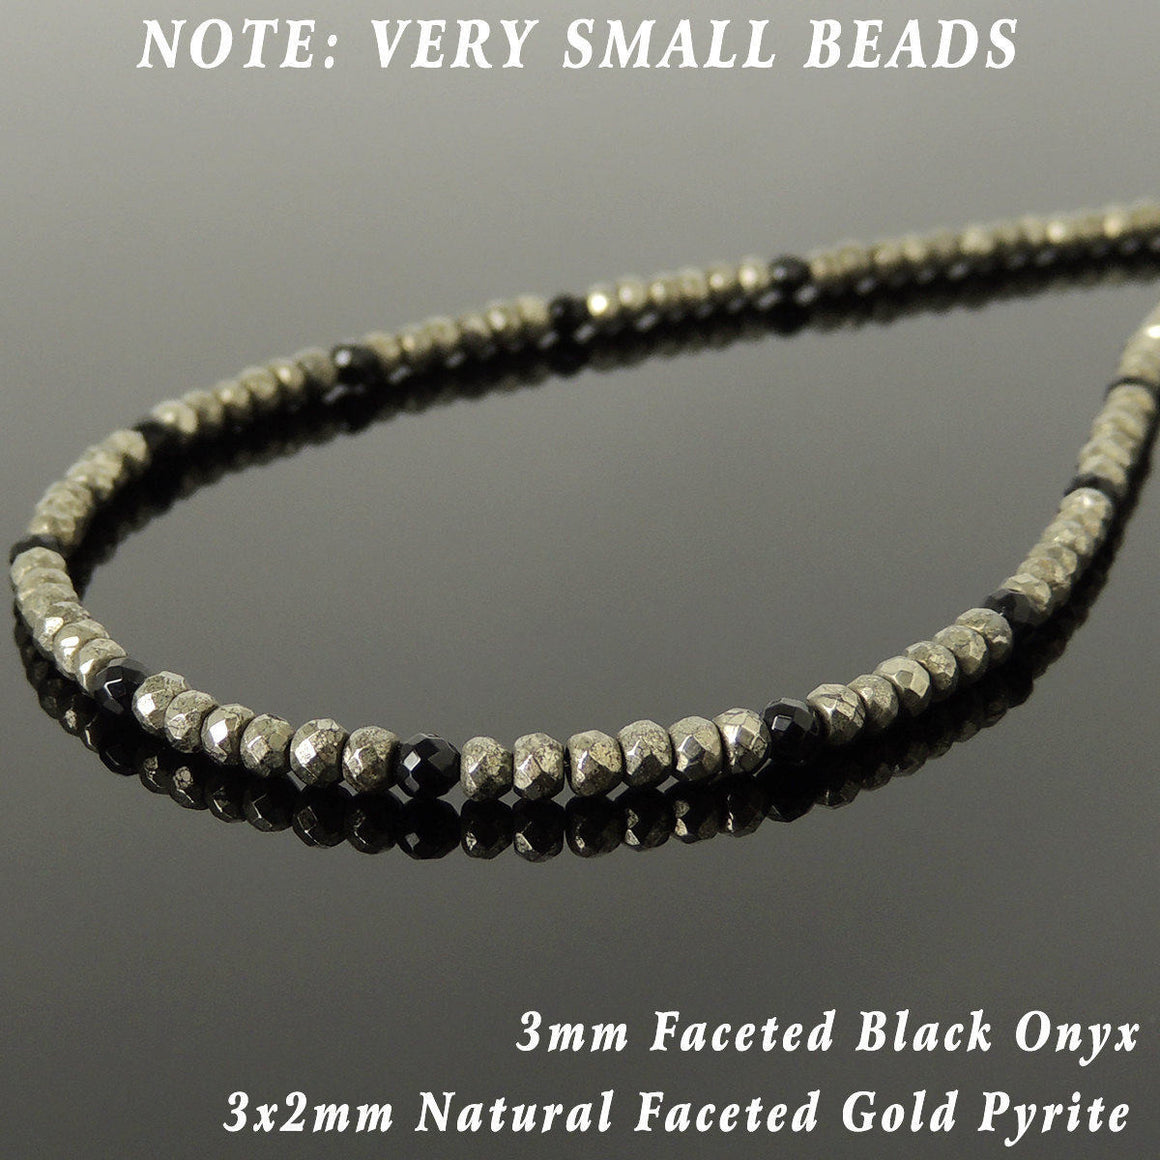 Faceted Bright Black Onyx & Gold Pyrite Healing Gemstone Necklace with S925 Sterling Silver Spacers & Clasp - Handmade by Gem & Silver NK181